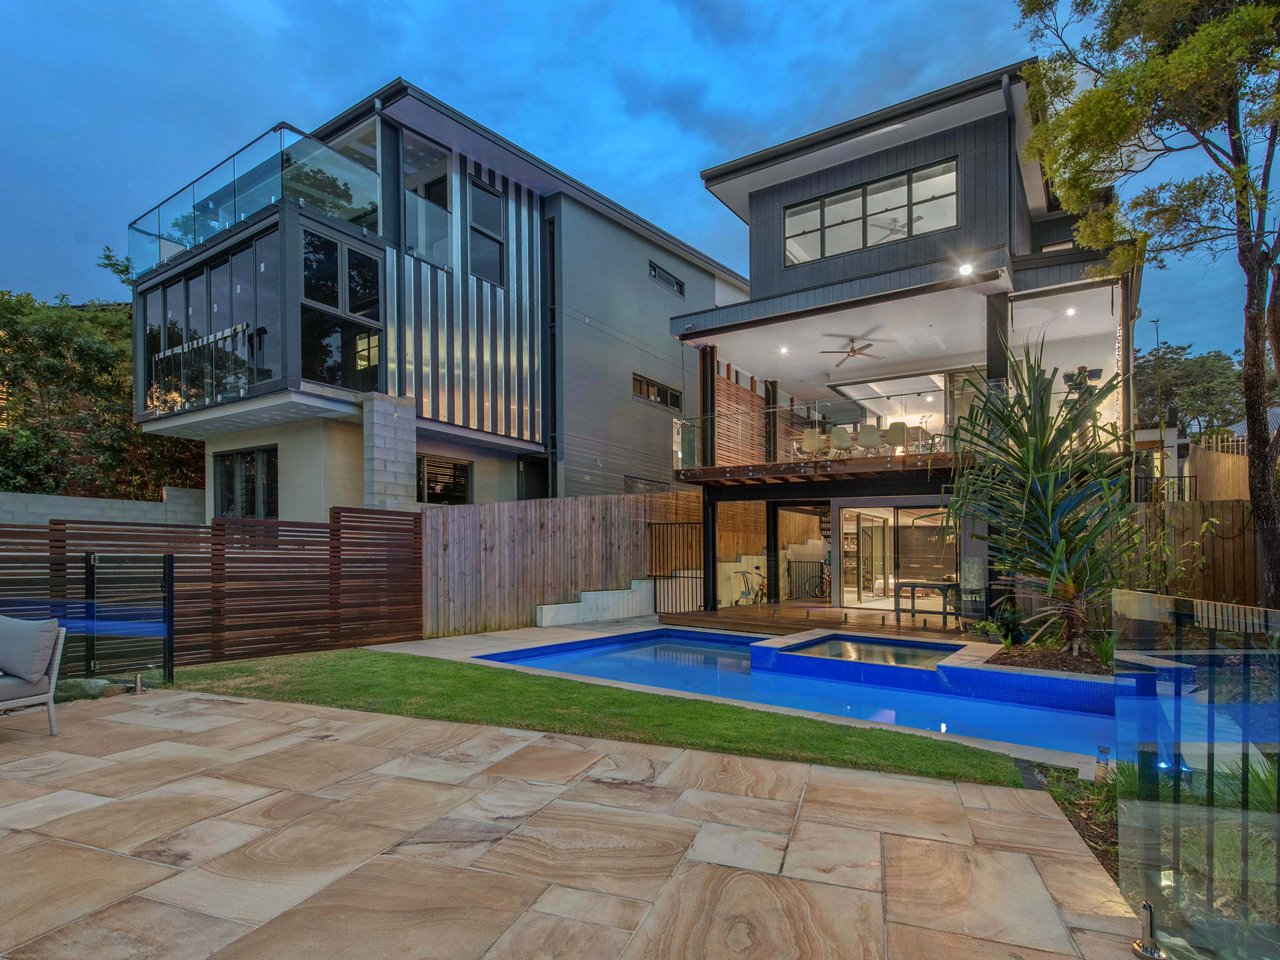 Real estate agent | Brisbane | Brisbane's prestige property market is booming